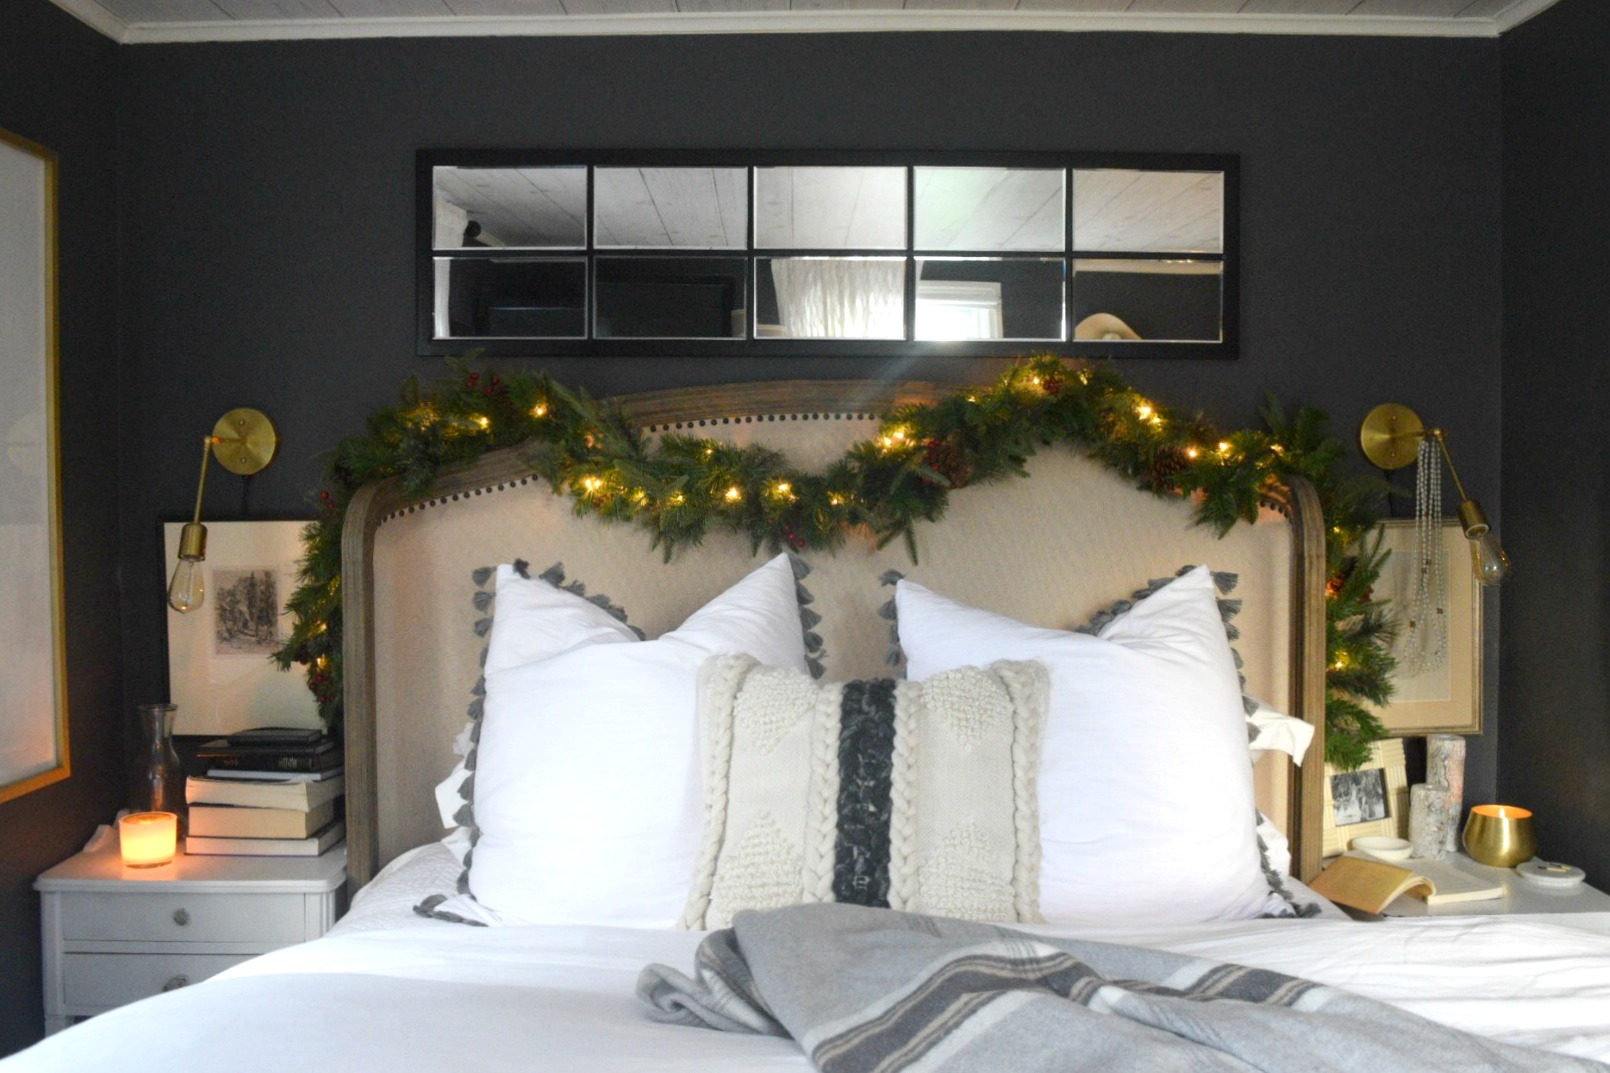 Christmas Bedroom Ideas- Simple Garland and Cozy Bedding